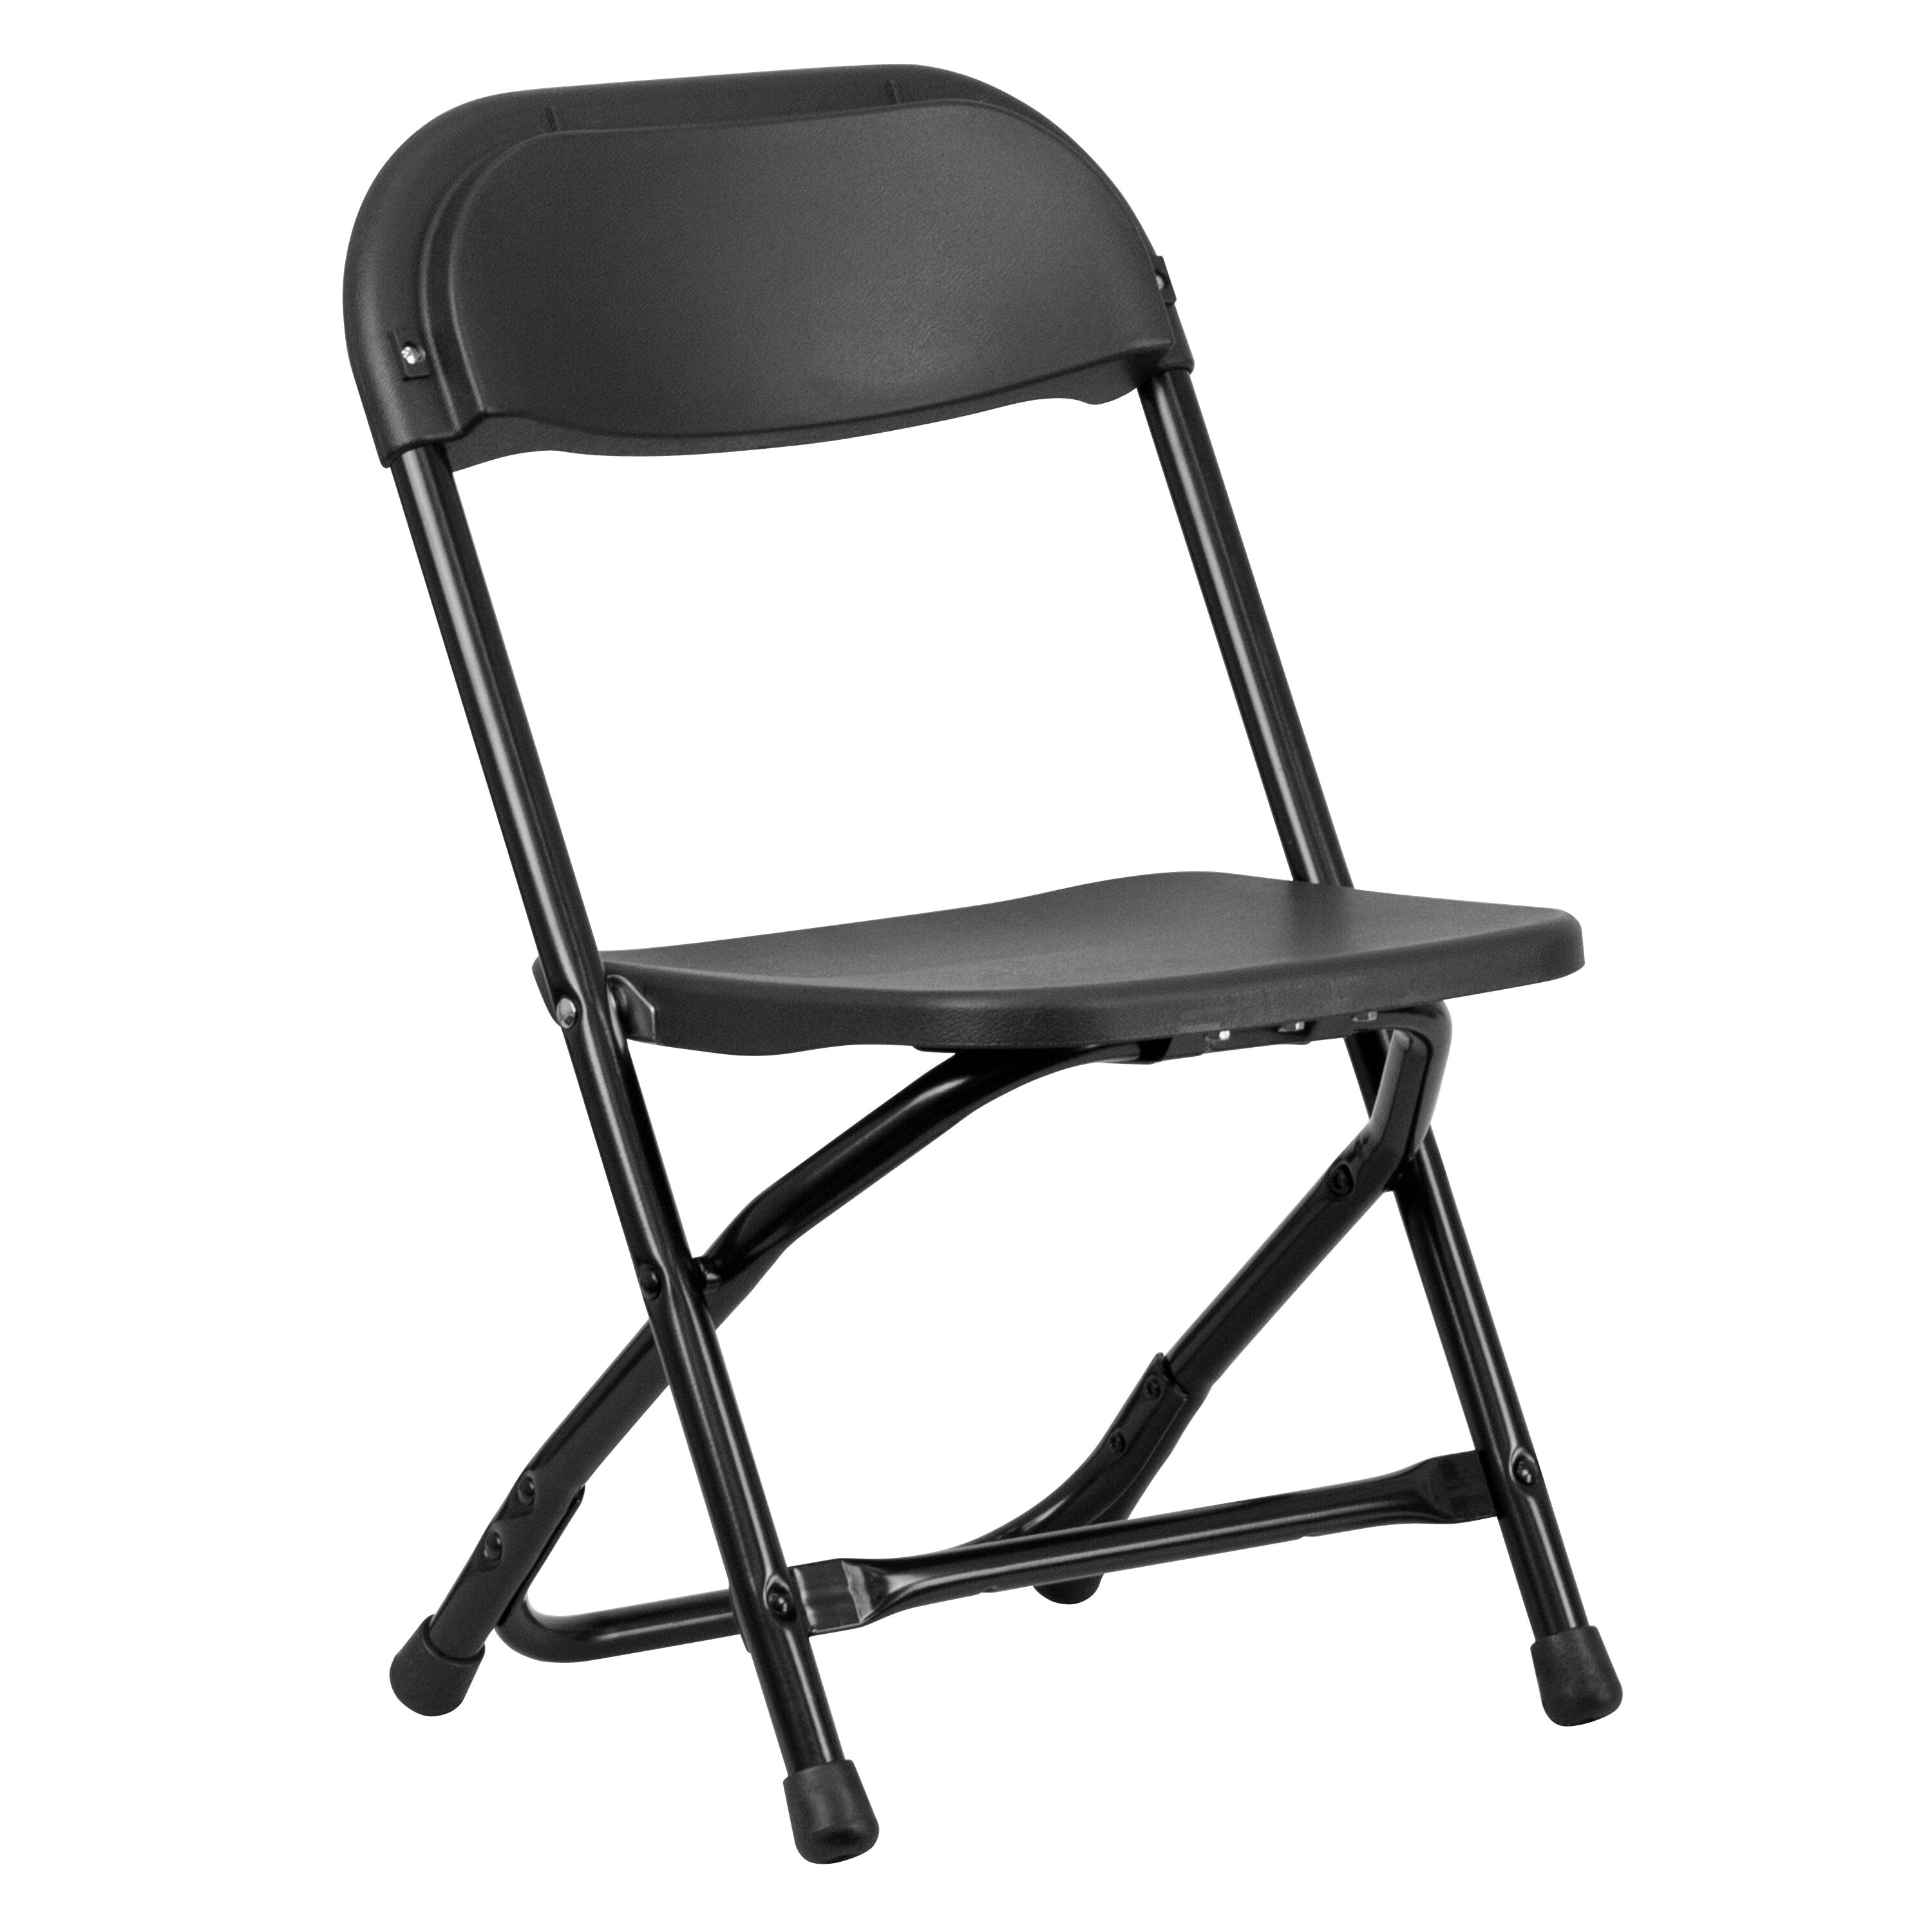 Black Folding Chairs Our Kids Black Plastic Folding Chair Is On Sale Now